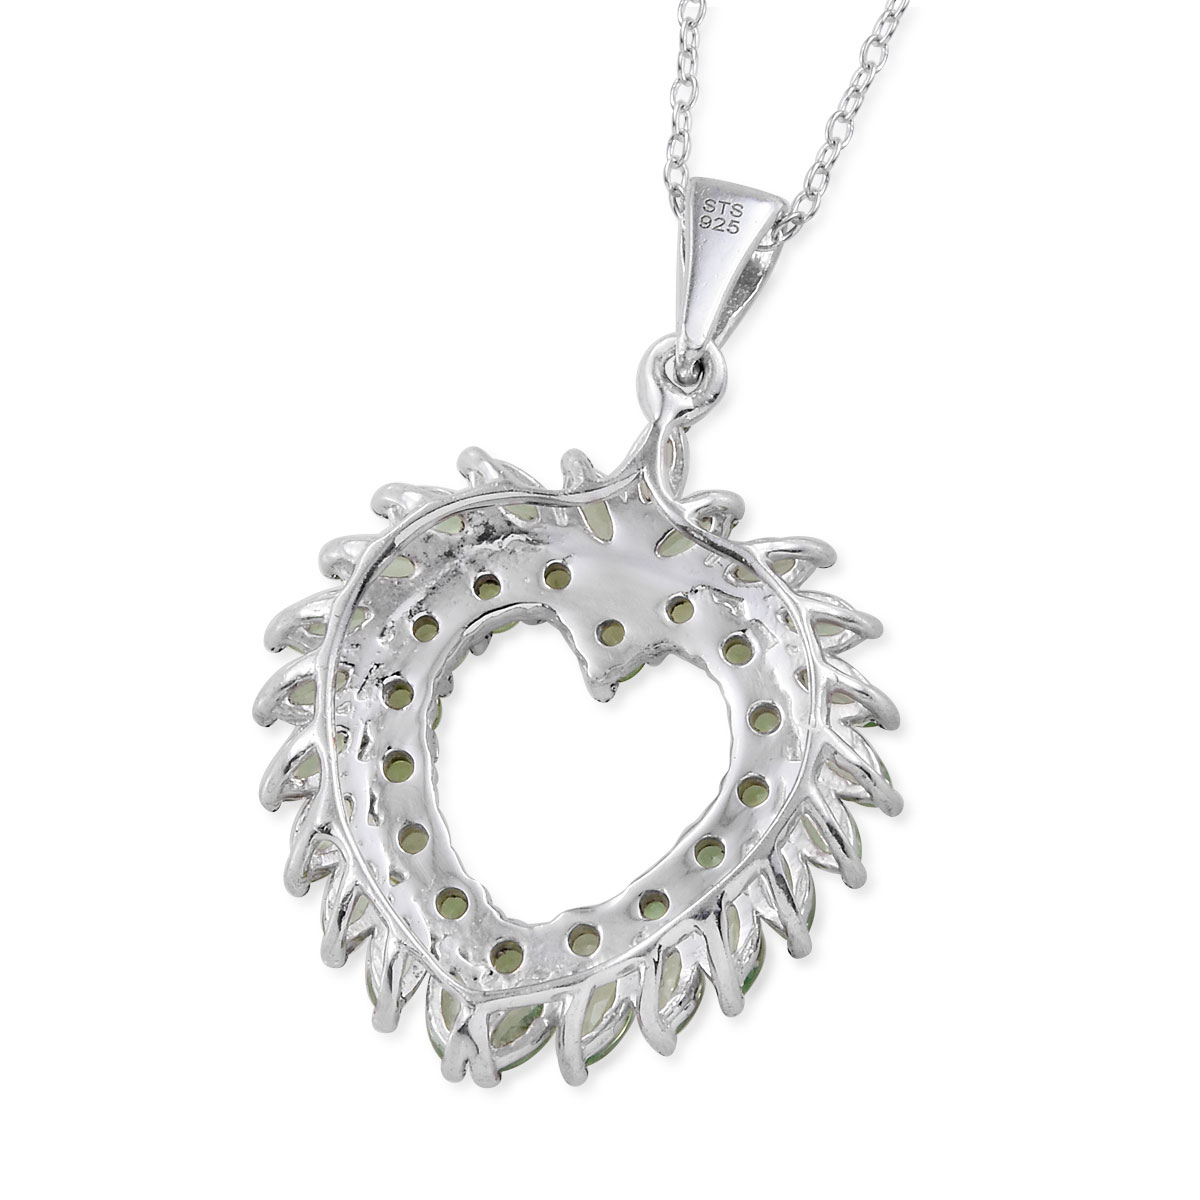 Mint Garnet Heart Wreath Pendant Necklace (20 in) in Platinum Over Sterling Silver 3.02 ctw